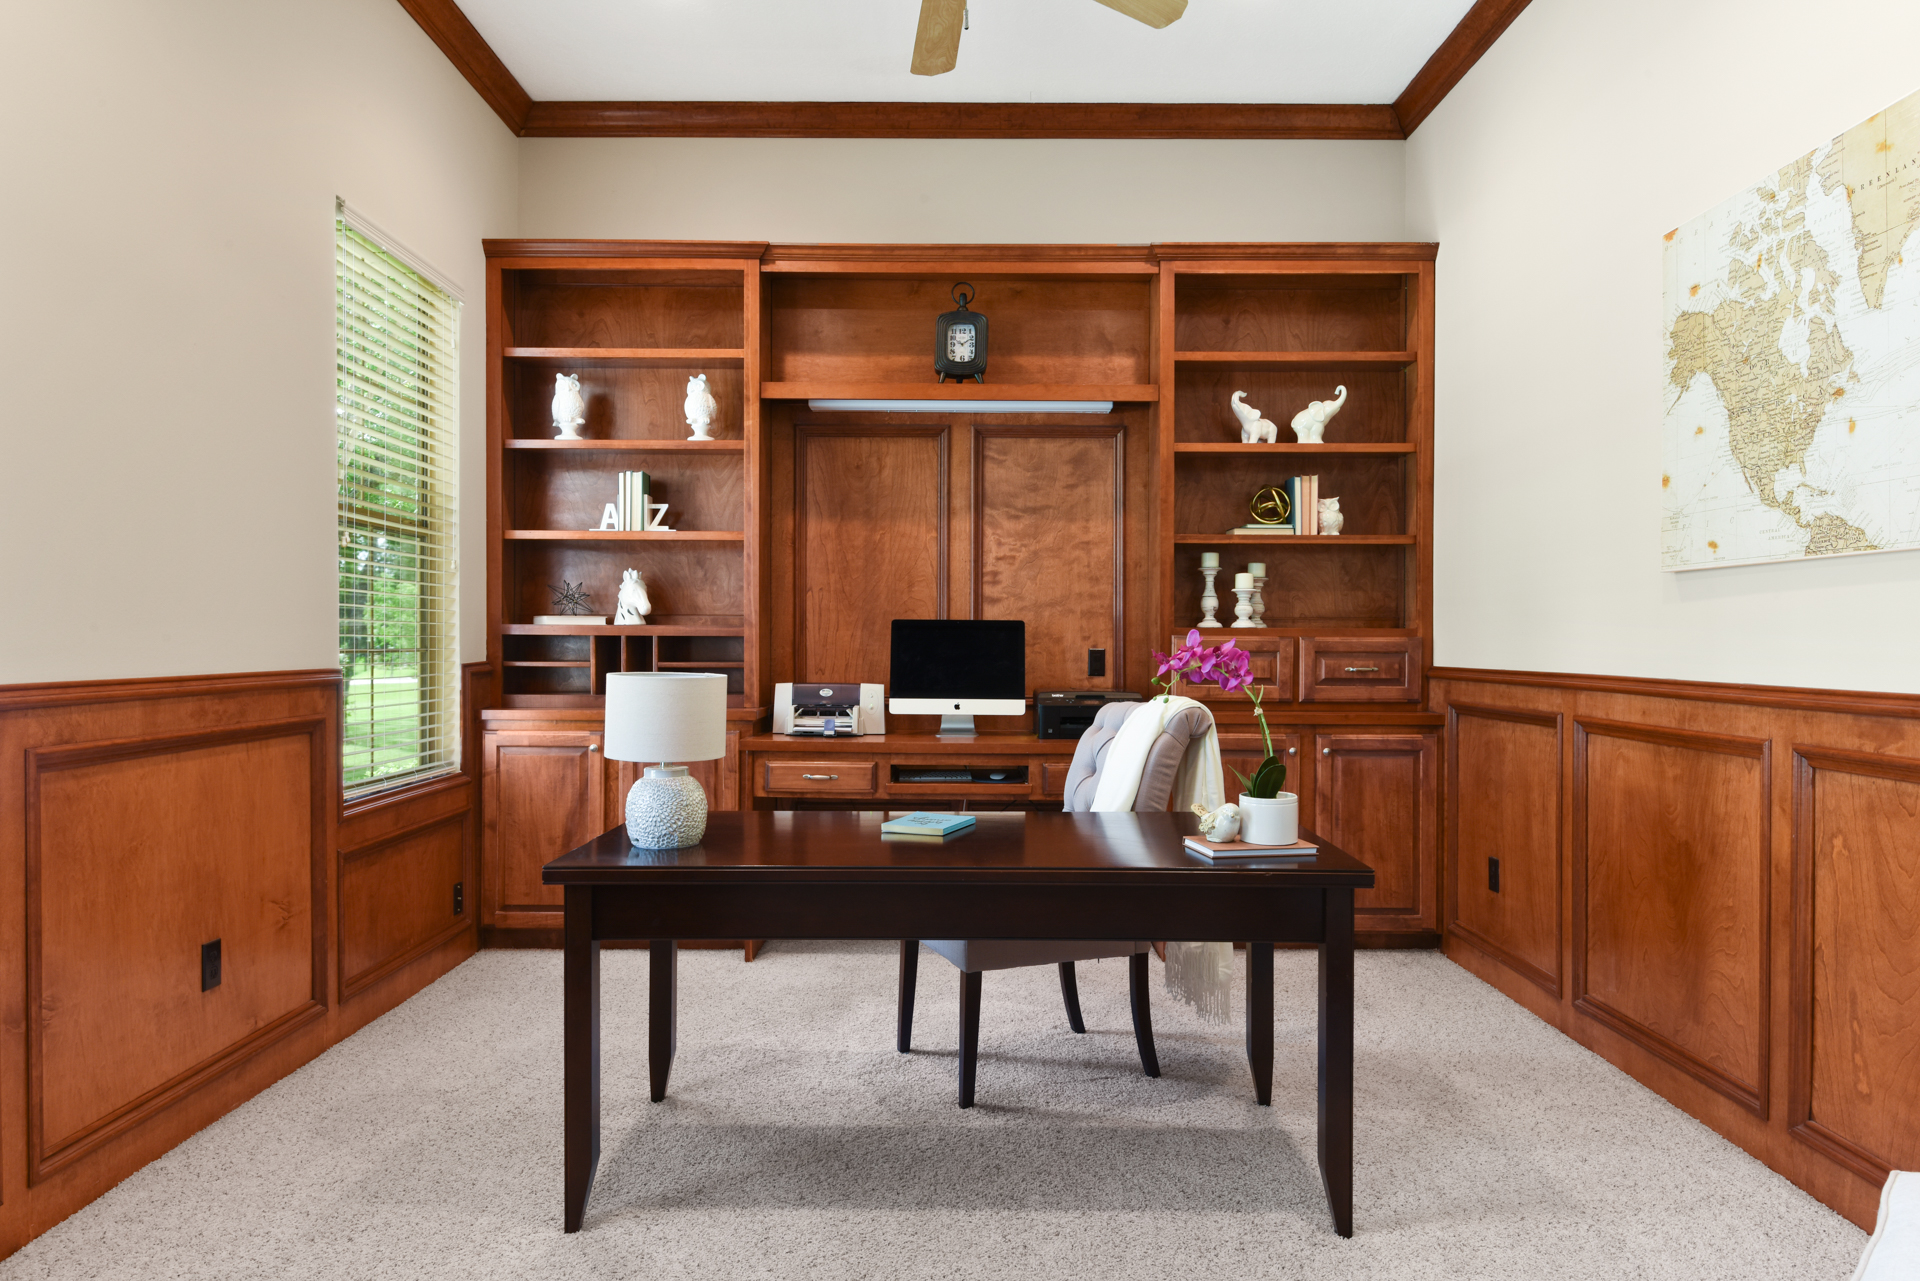 Staging The Nest - Vacant Staging - Study